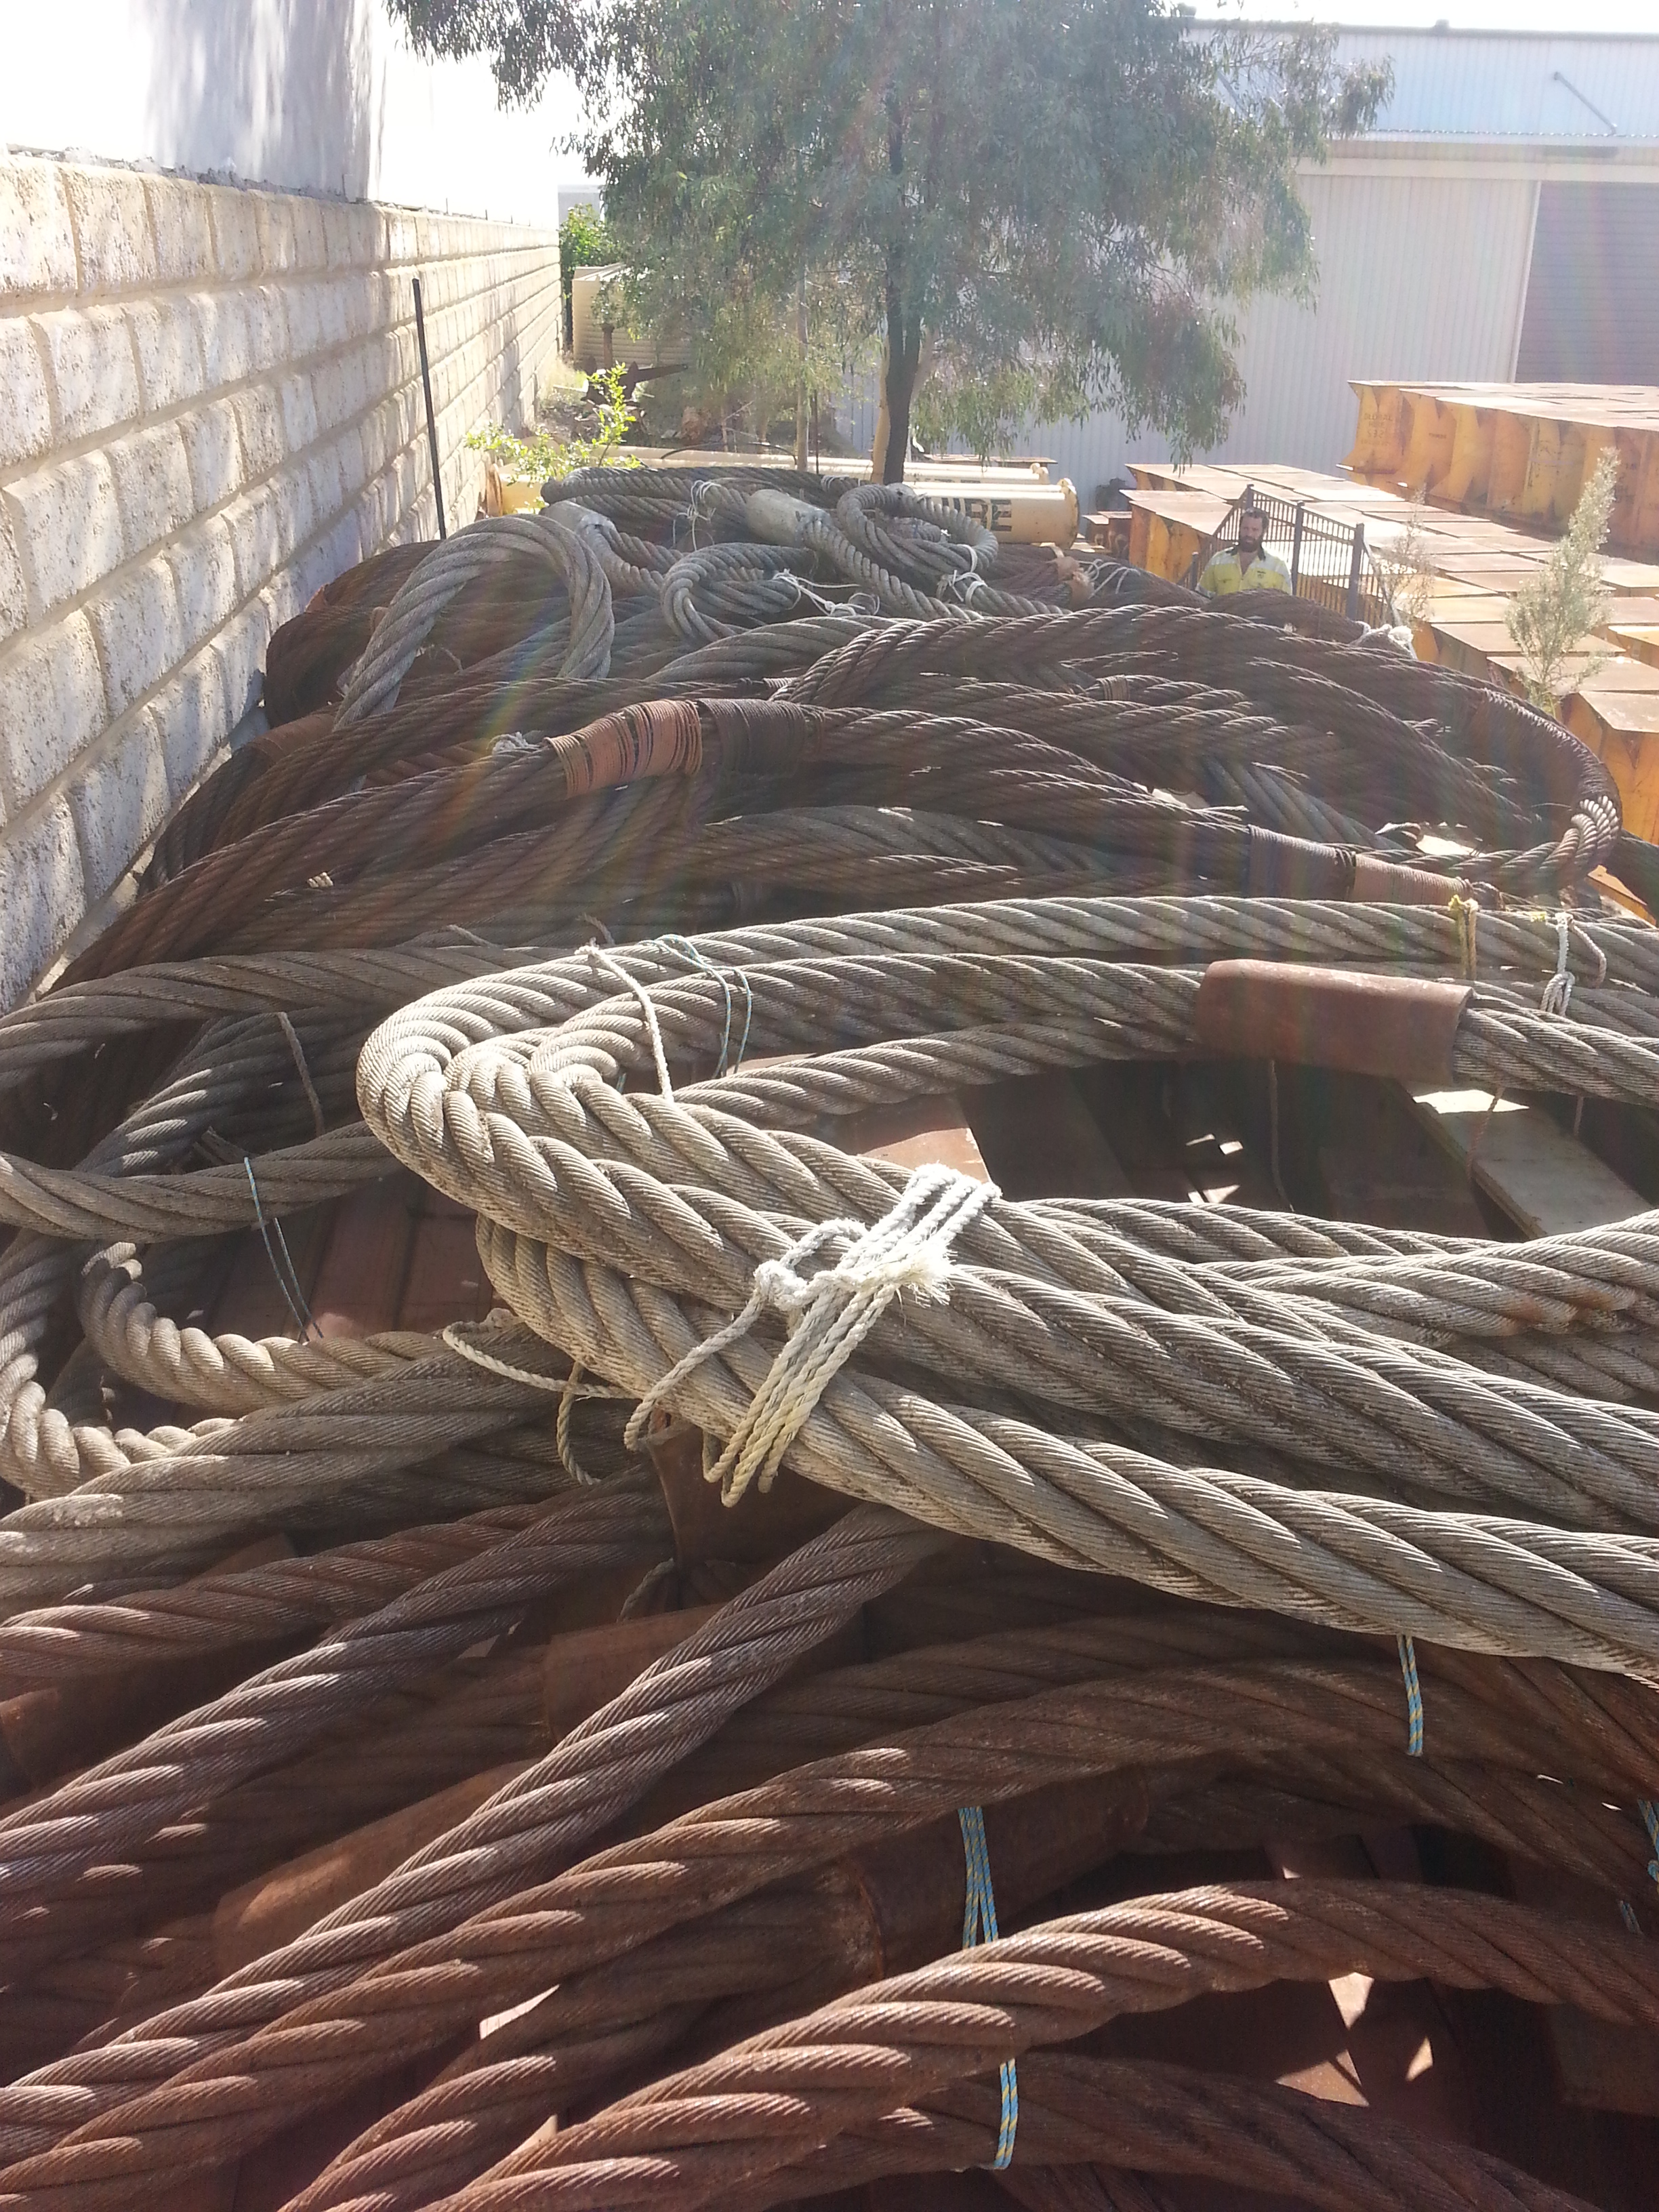 ortment-Heavy-Wire-Ropes Wiring Grommet on wiring lamps, wiring plugs, wiring electrical, wiring accessories, wiring batteries, wiring terminals, wiring switches, wiring covers, wiring conduit, wiring nuts, wiring bolts,